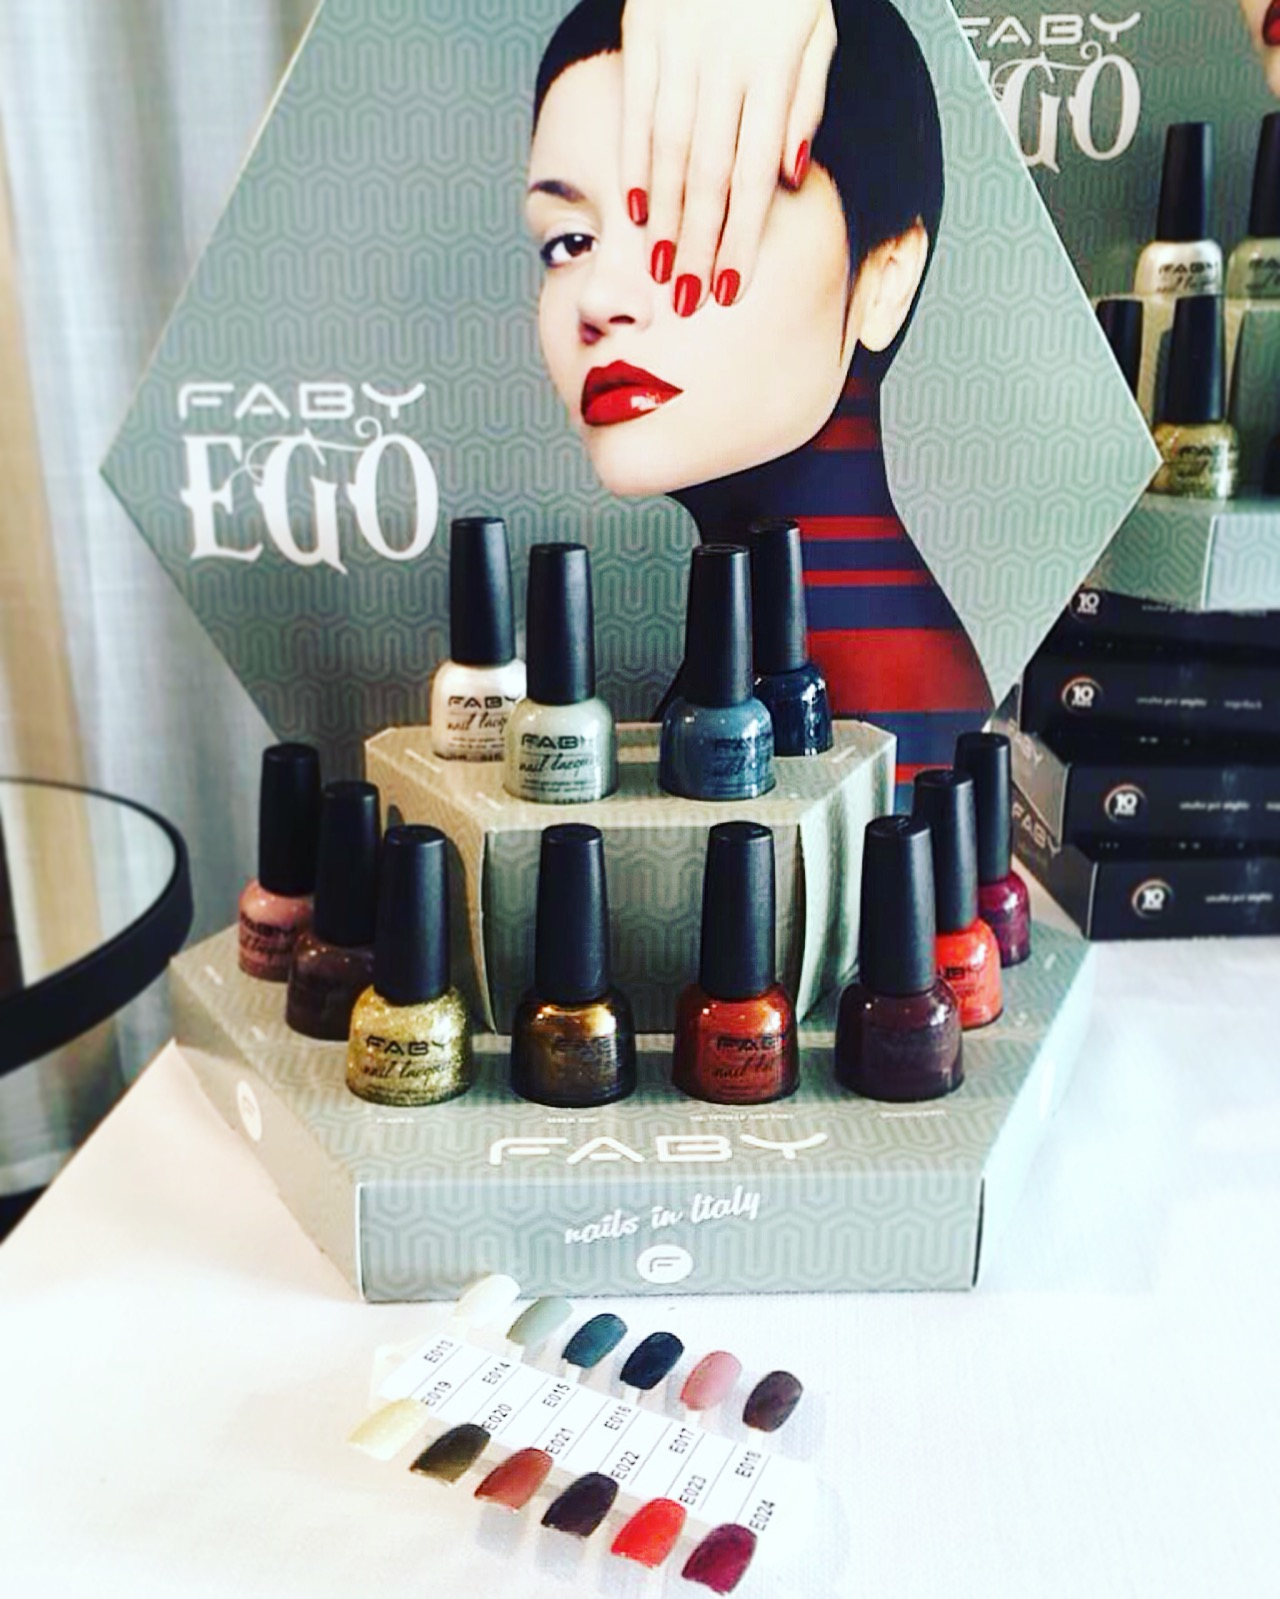 Faby Ego nails